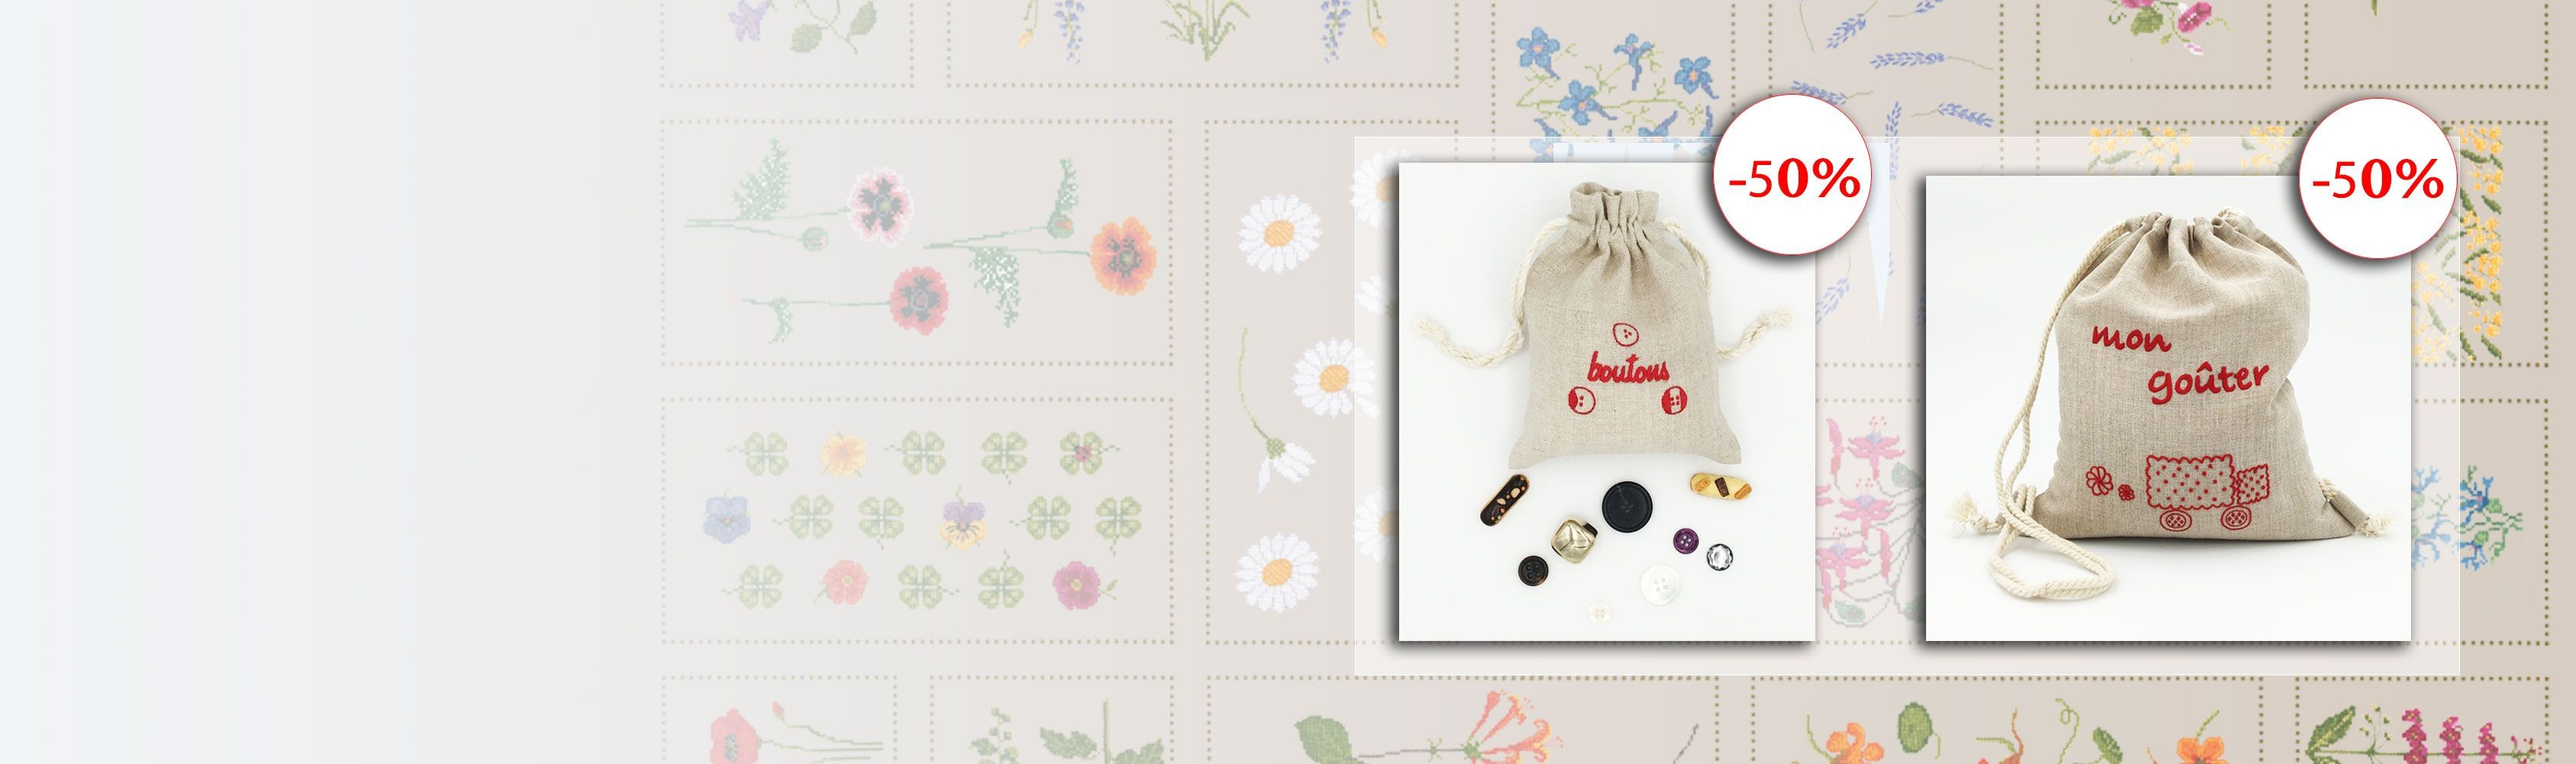 Embroidered Accessories: linen bag Mon Goûter and linen pochette Boutons